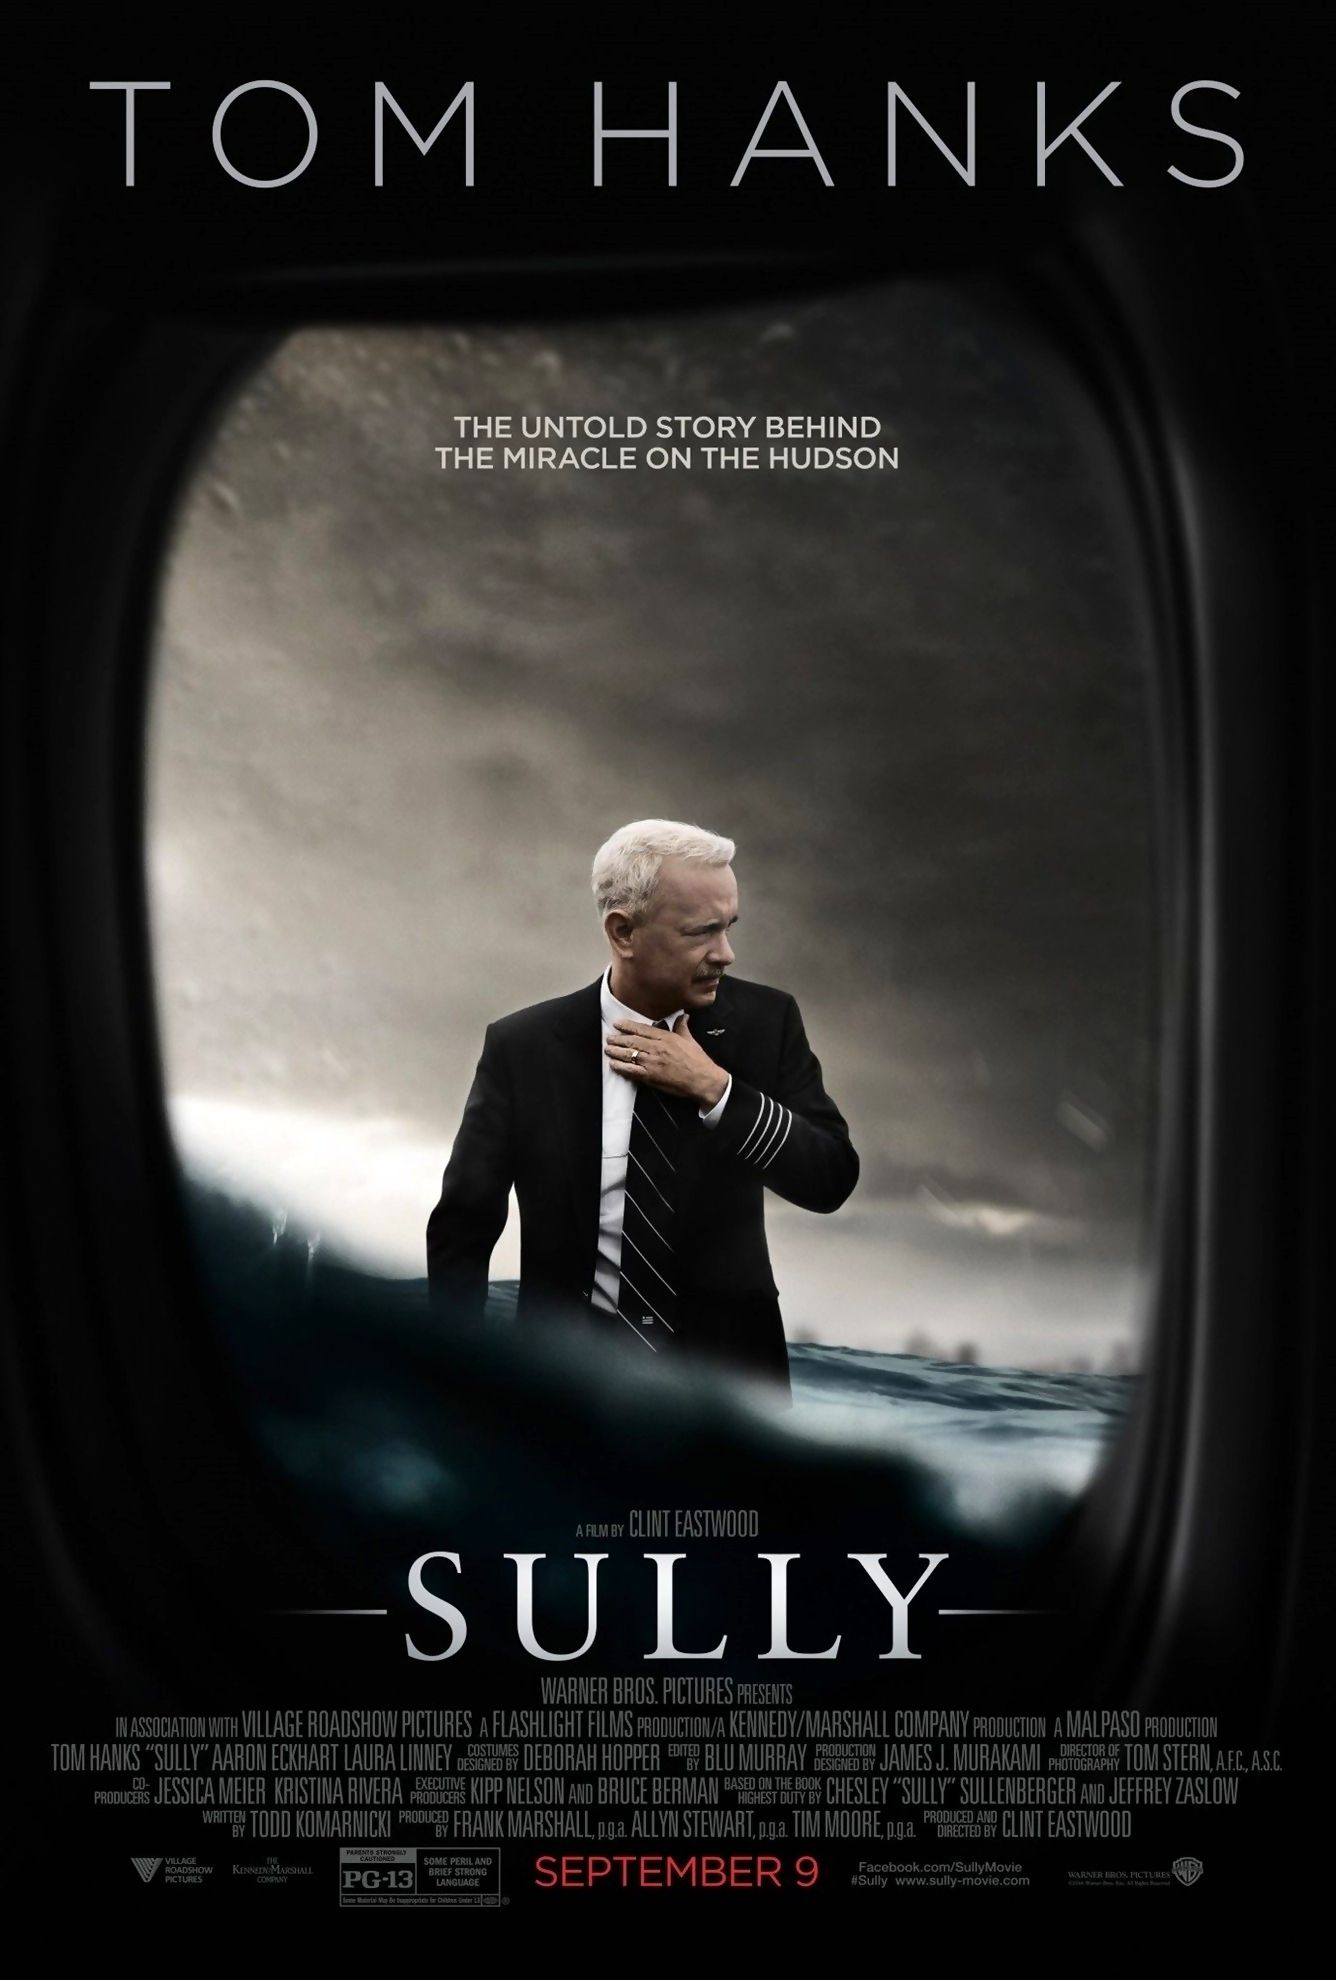 Sully is a 2016 American biographical drama film directed